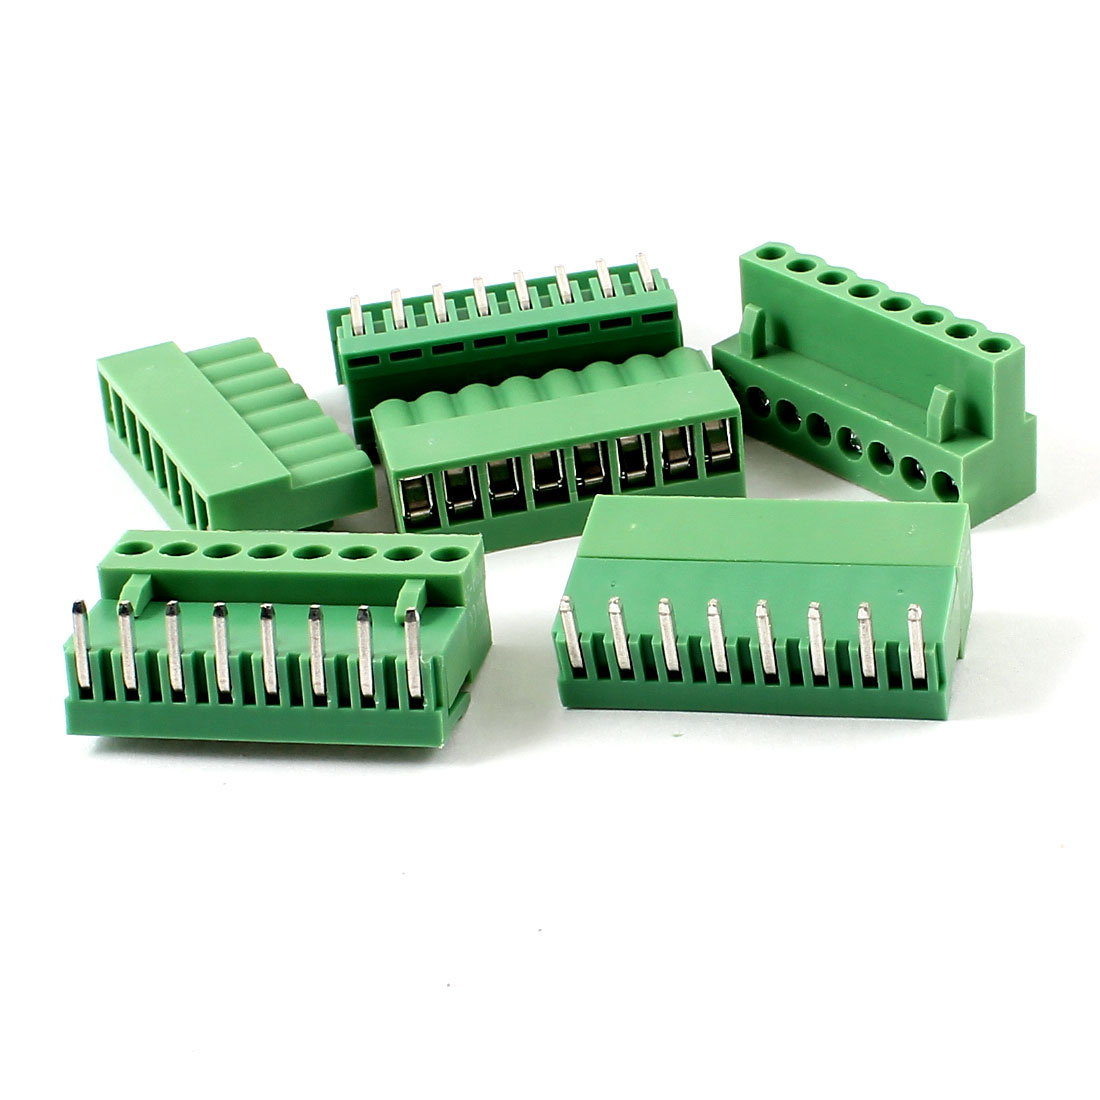 5 Pairs 8 Pin 3.96mm Screw Pluggable Terminal Block Connector 300V 10A Green